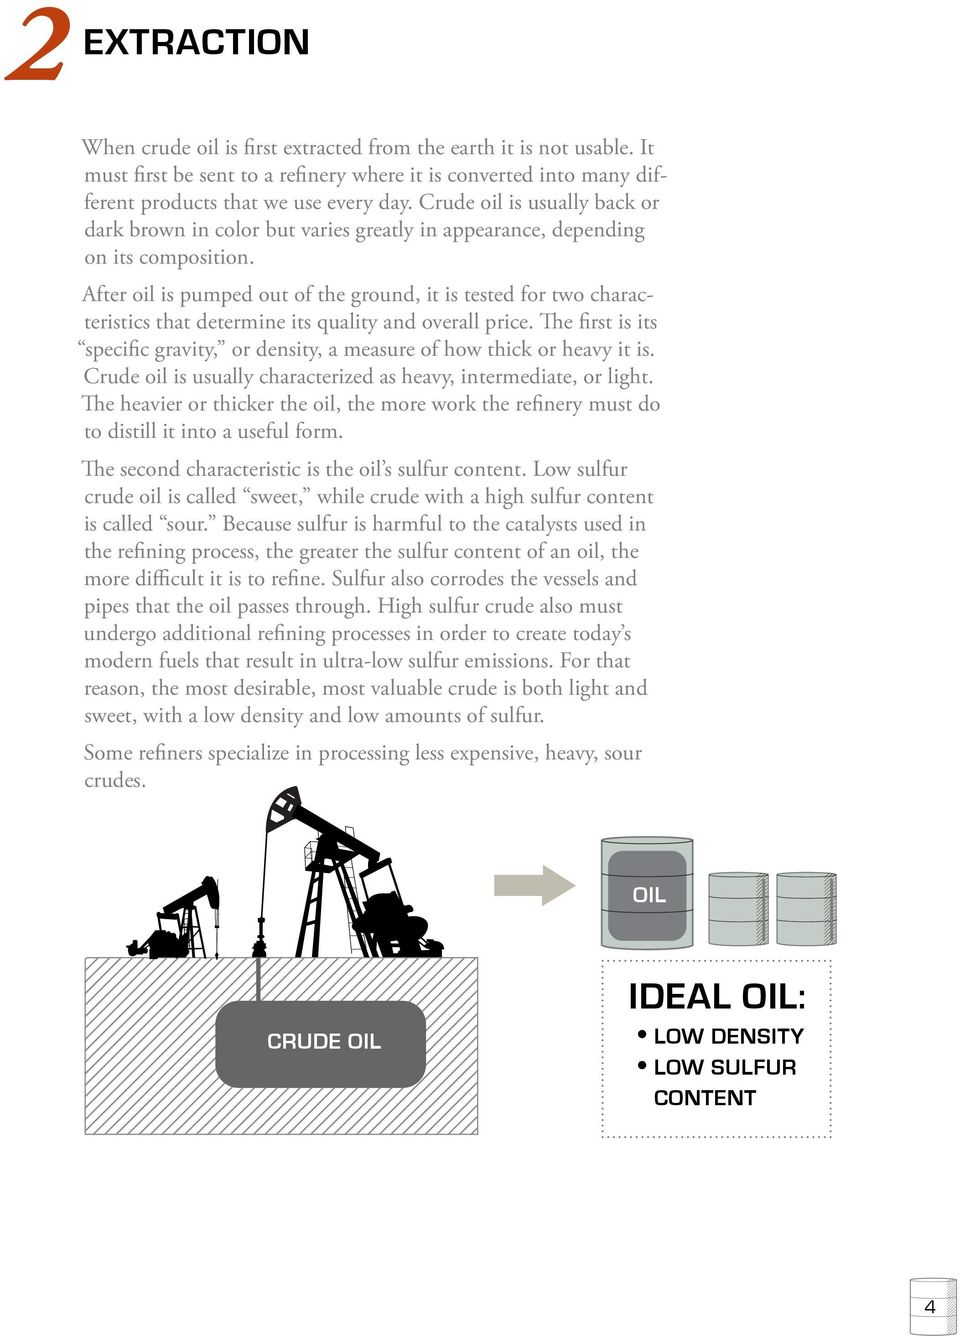 After oil is pumped out of the ground, it is tested for two characteristics that determine its quality and overall price.